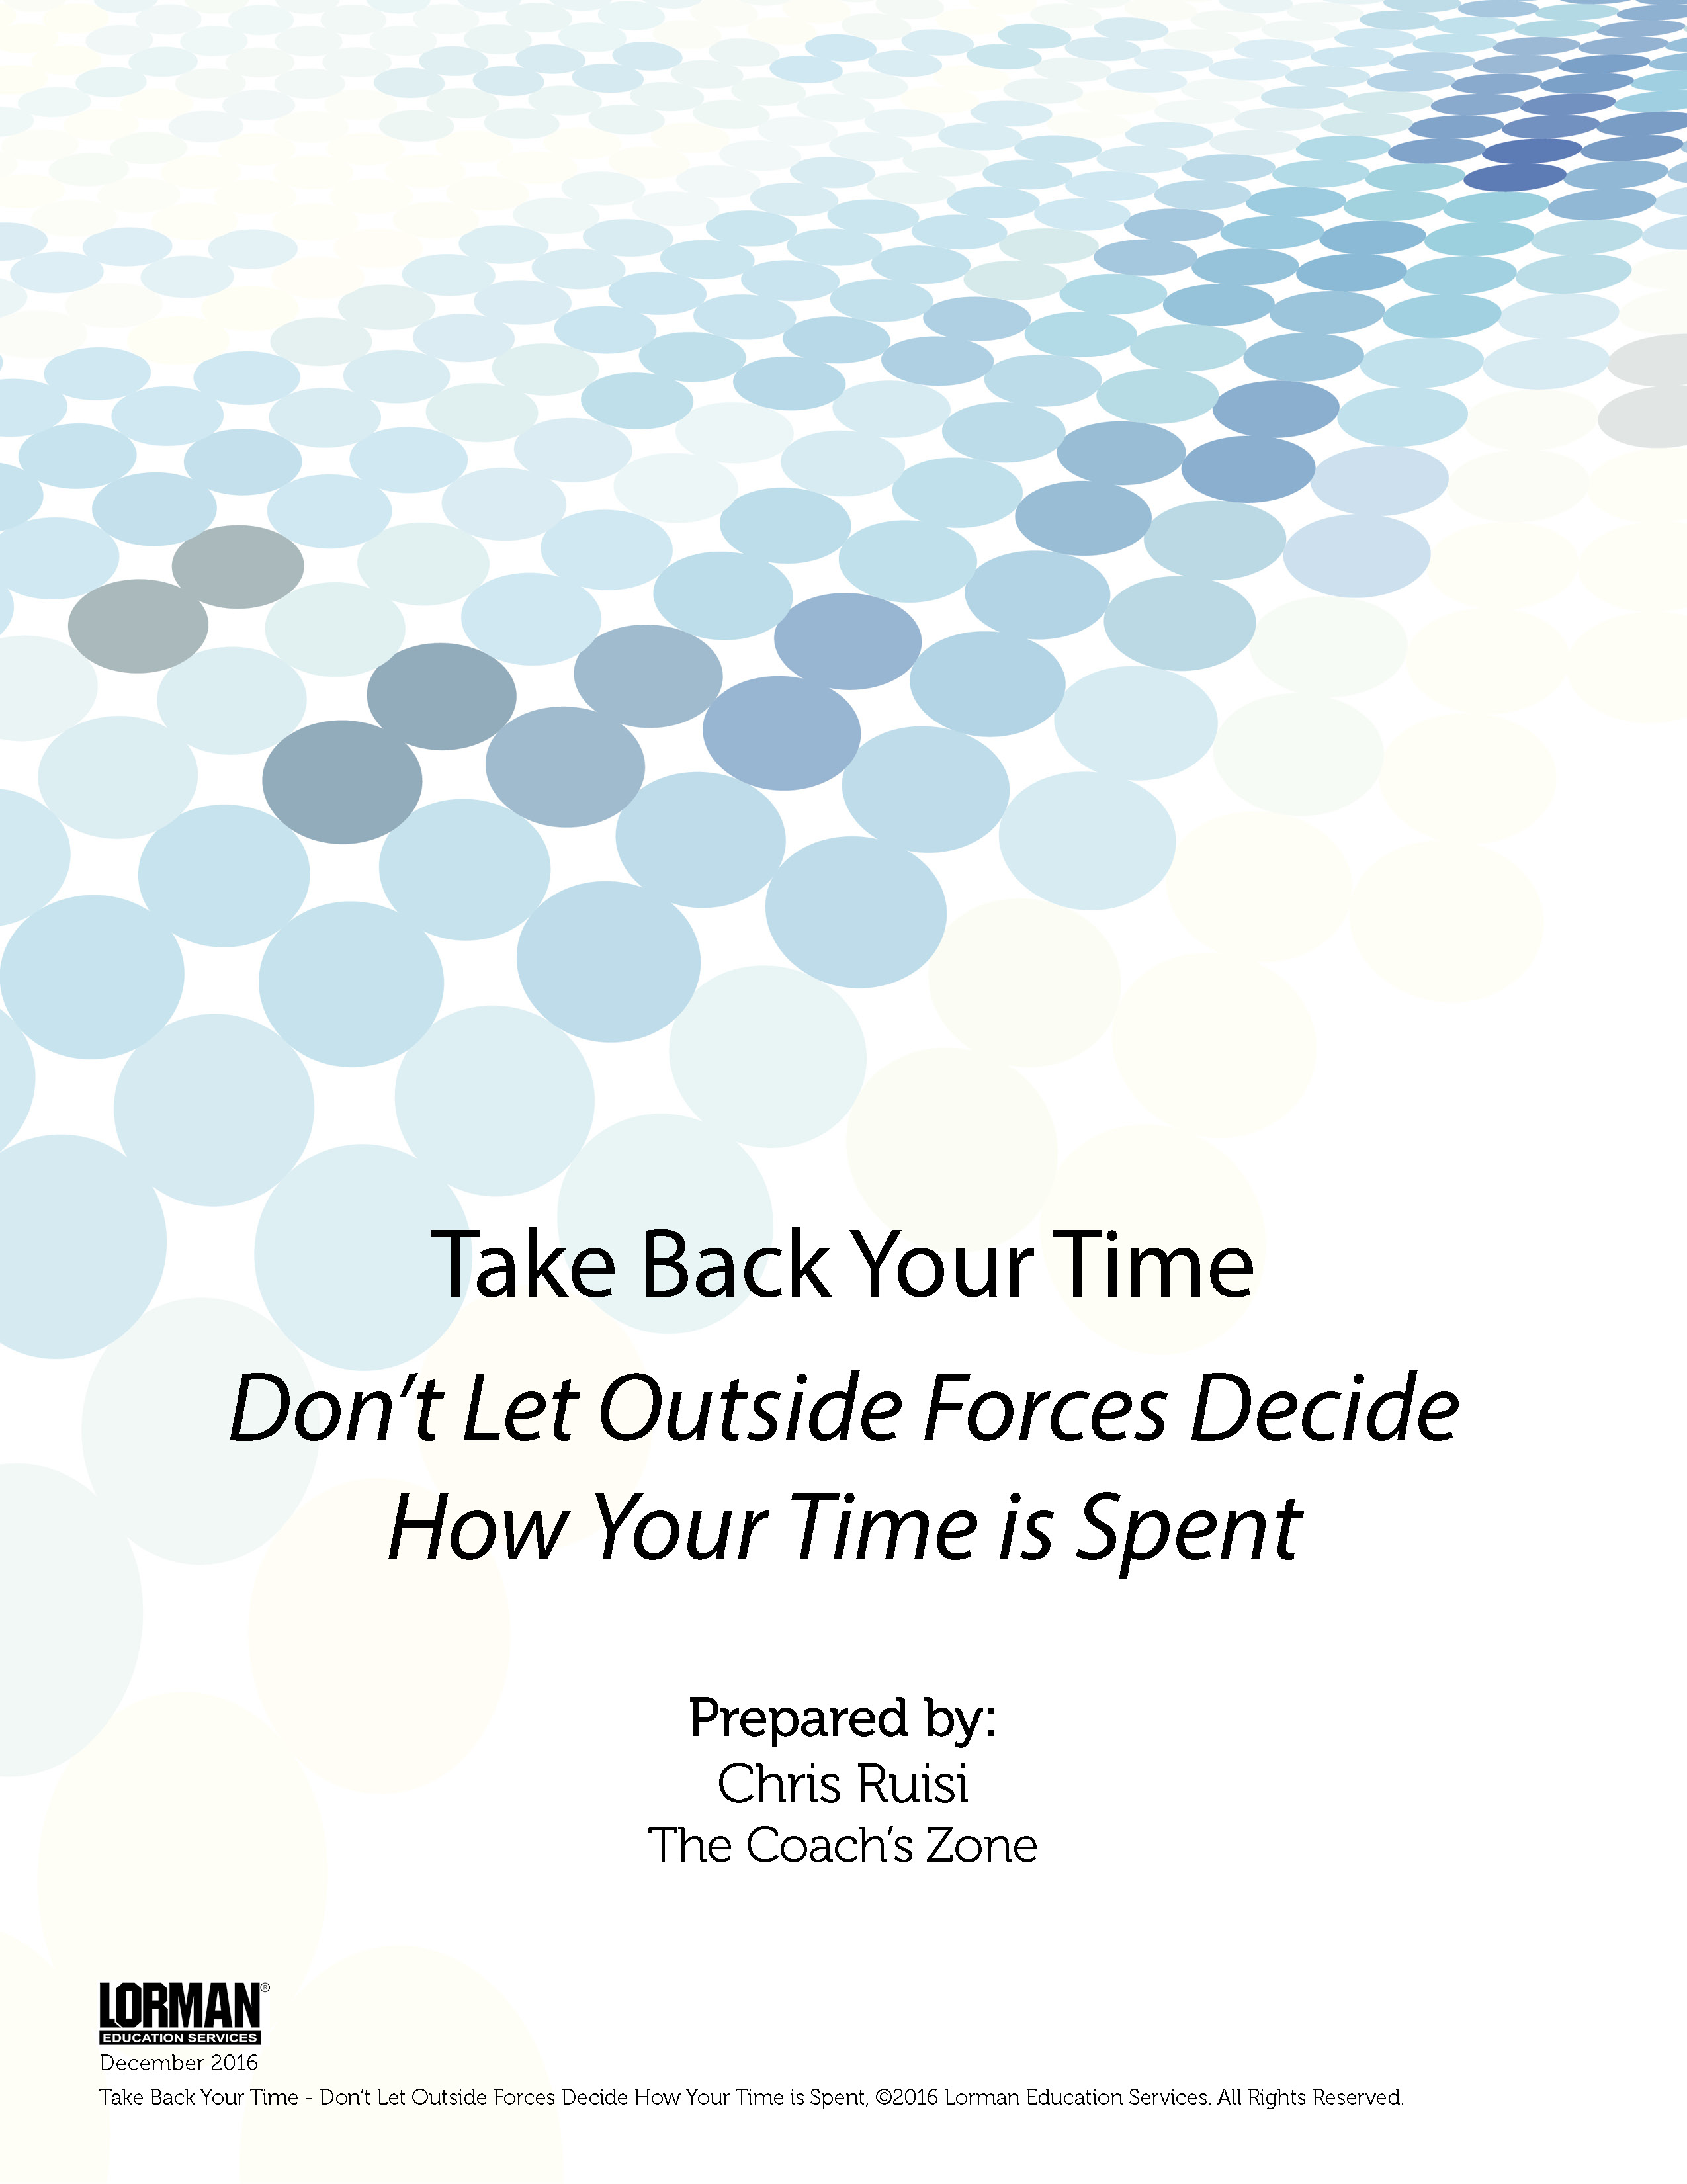 Take Back Your Time - Don't Let Outside Forces Decide How Your Time is Spent